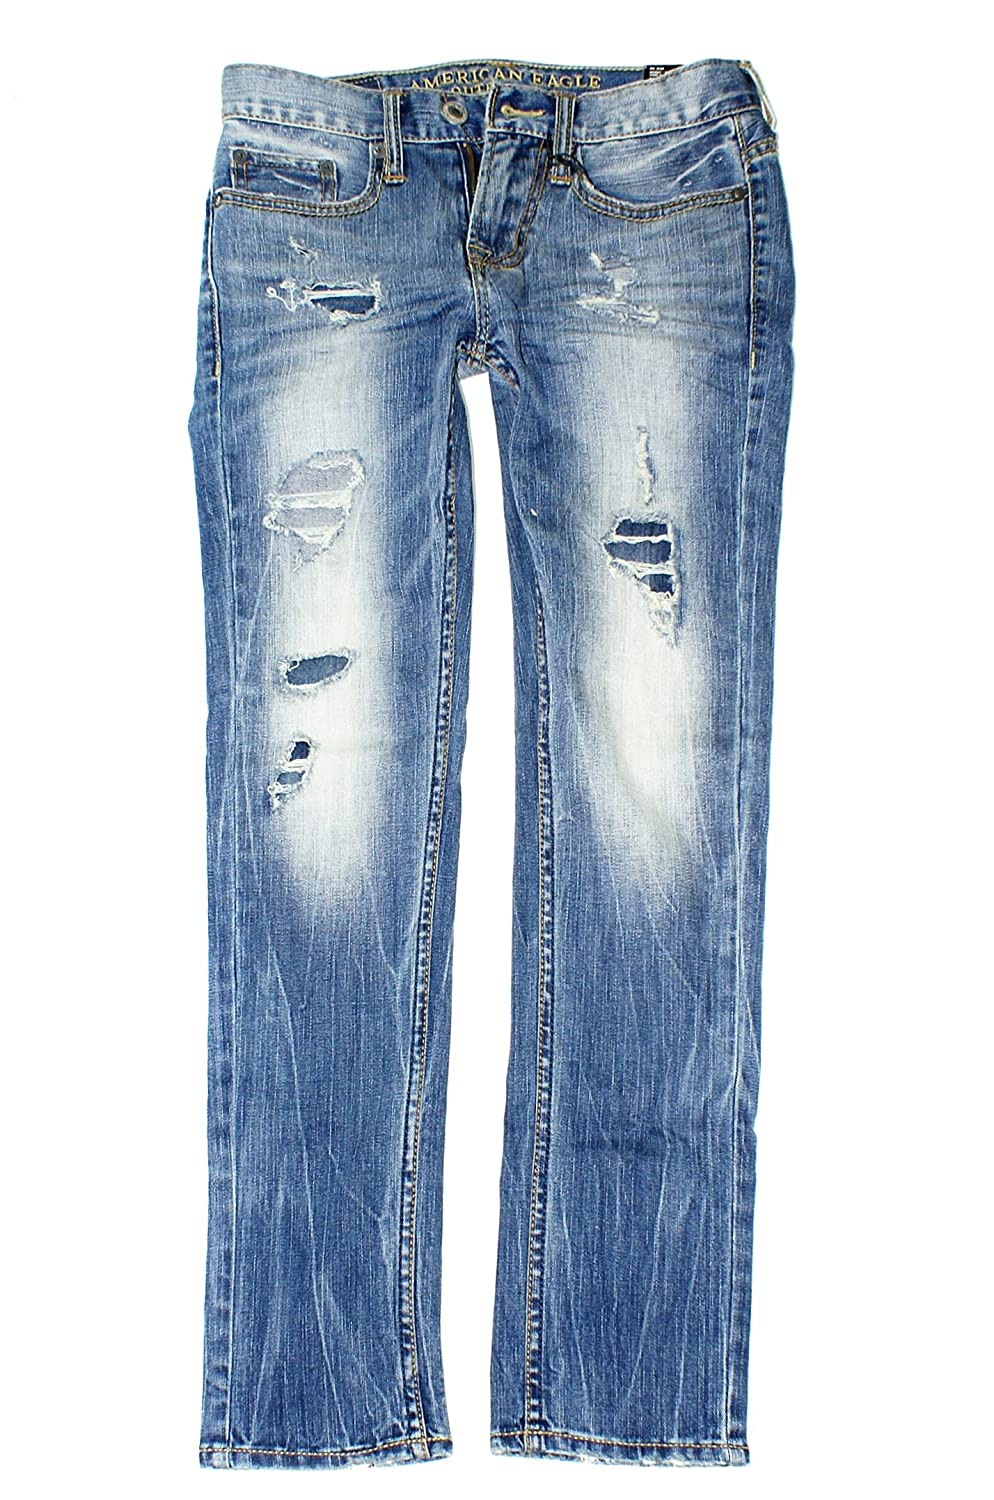 NEW AMERICAN EAGLE SLIM JEANS MENS 32X34  DESTROYED LIGHT WASH FREE SHIP